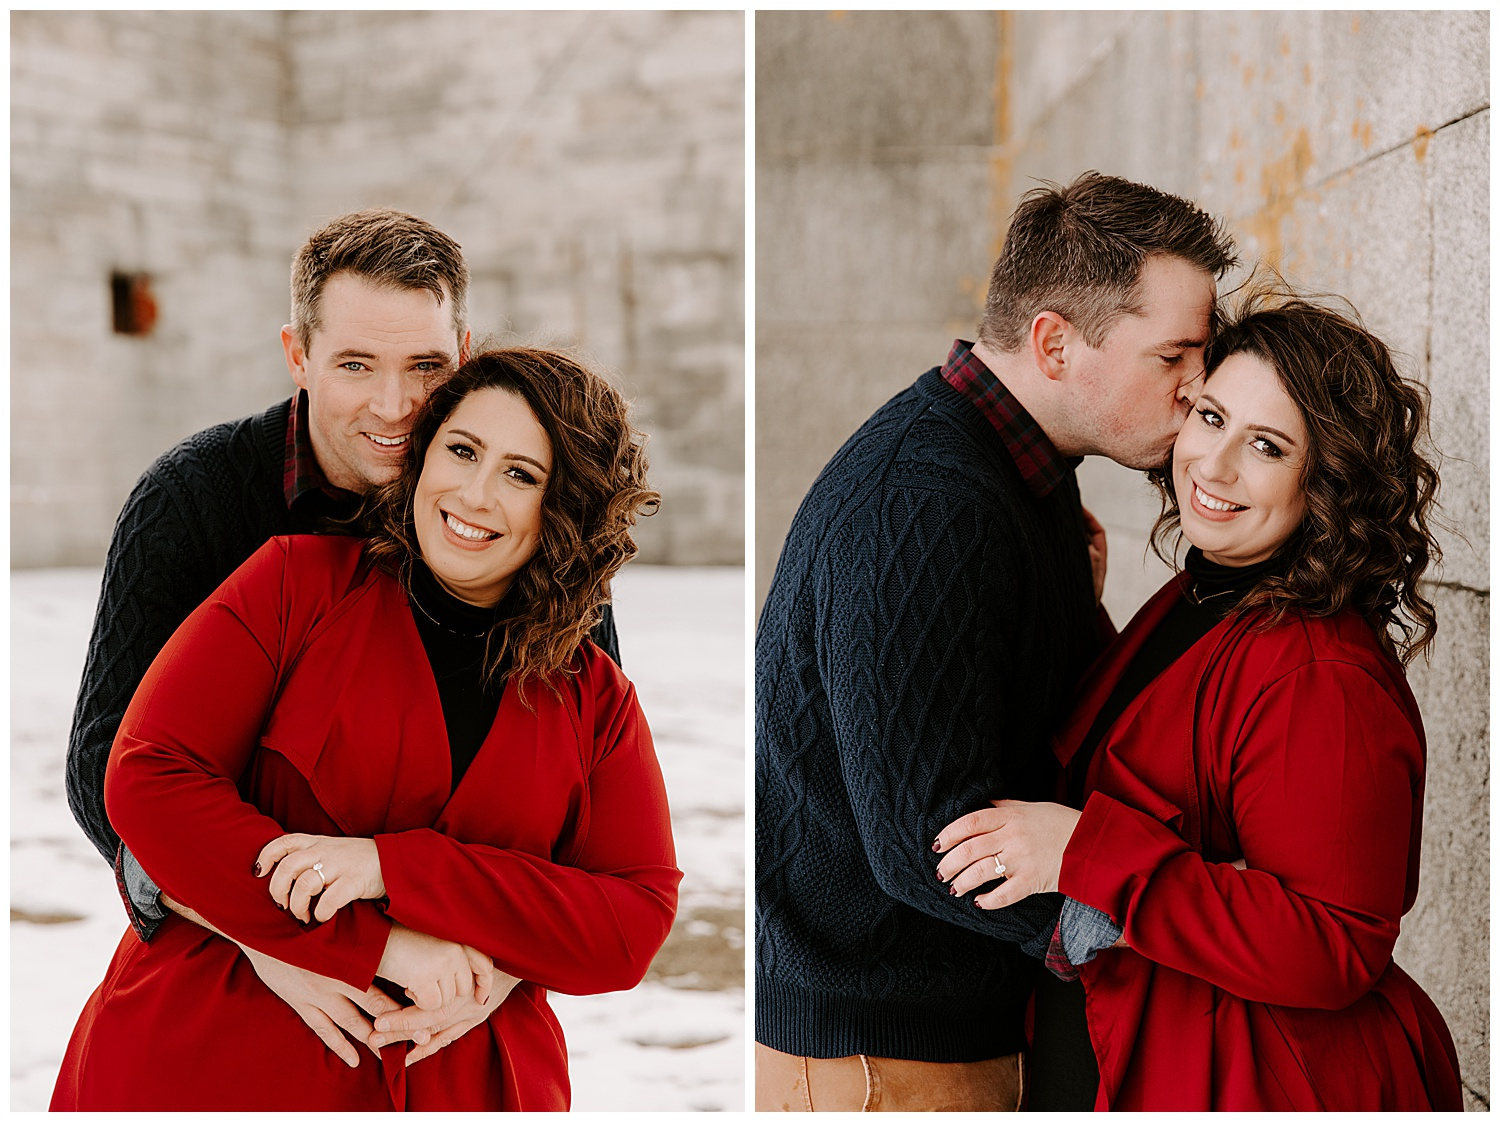 kevin-danielle-snow-winter-engagement-session-castle-island-boston03.jpg